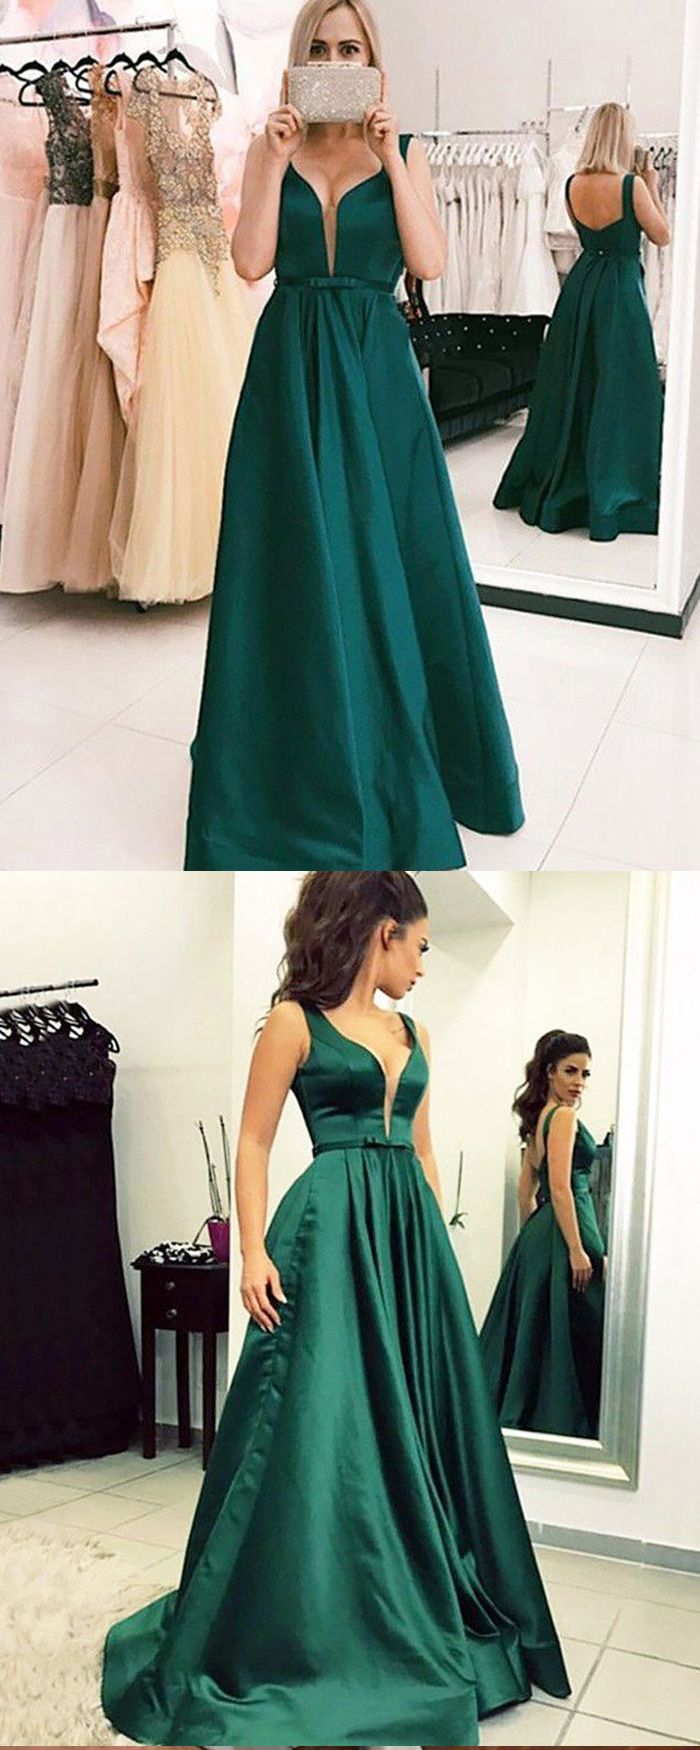 Simple pleated vneck green satin ball gown prom dress pm in